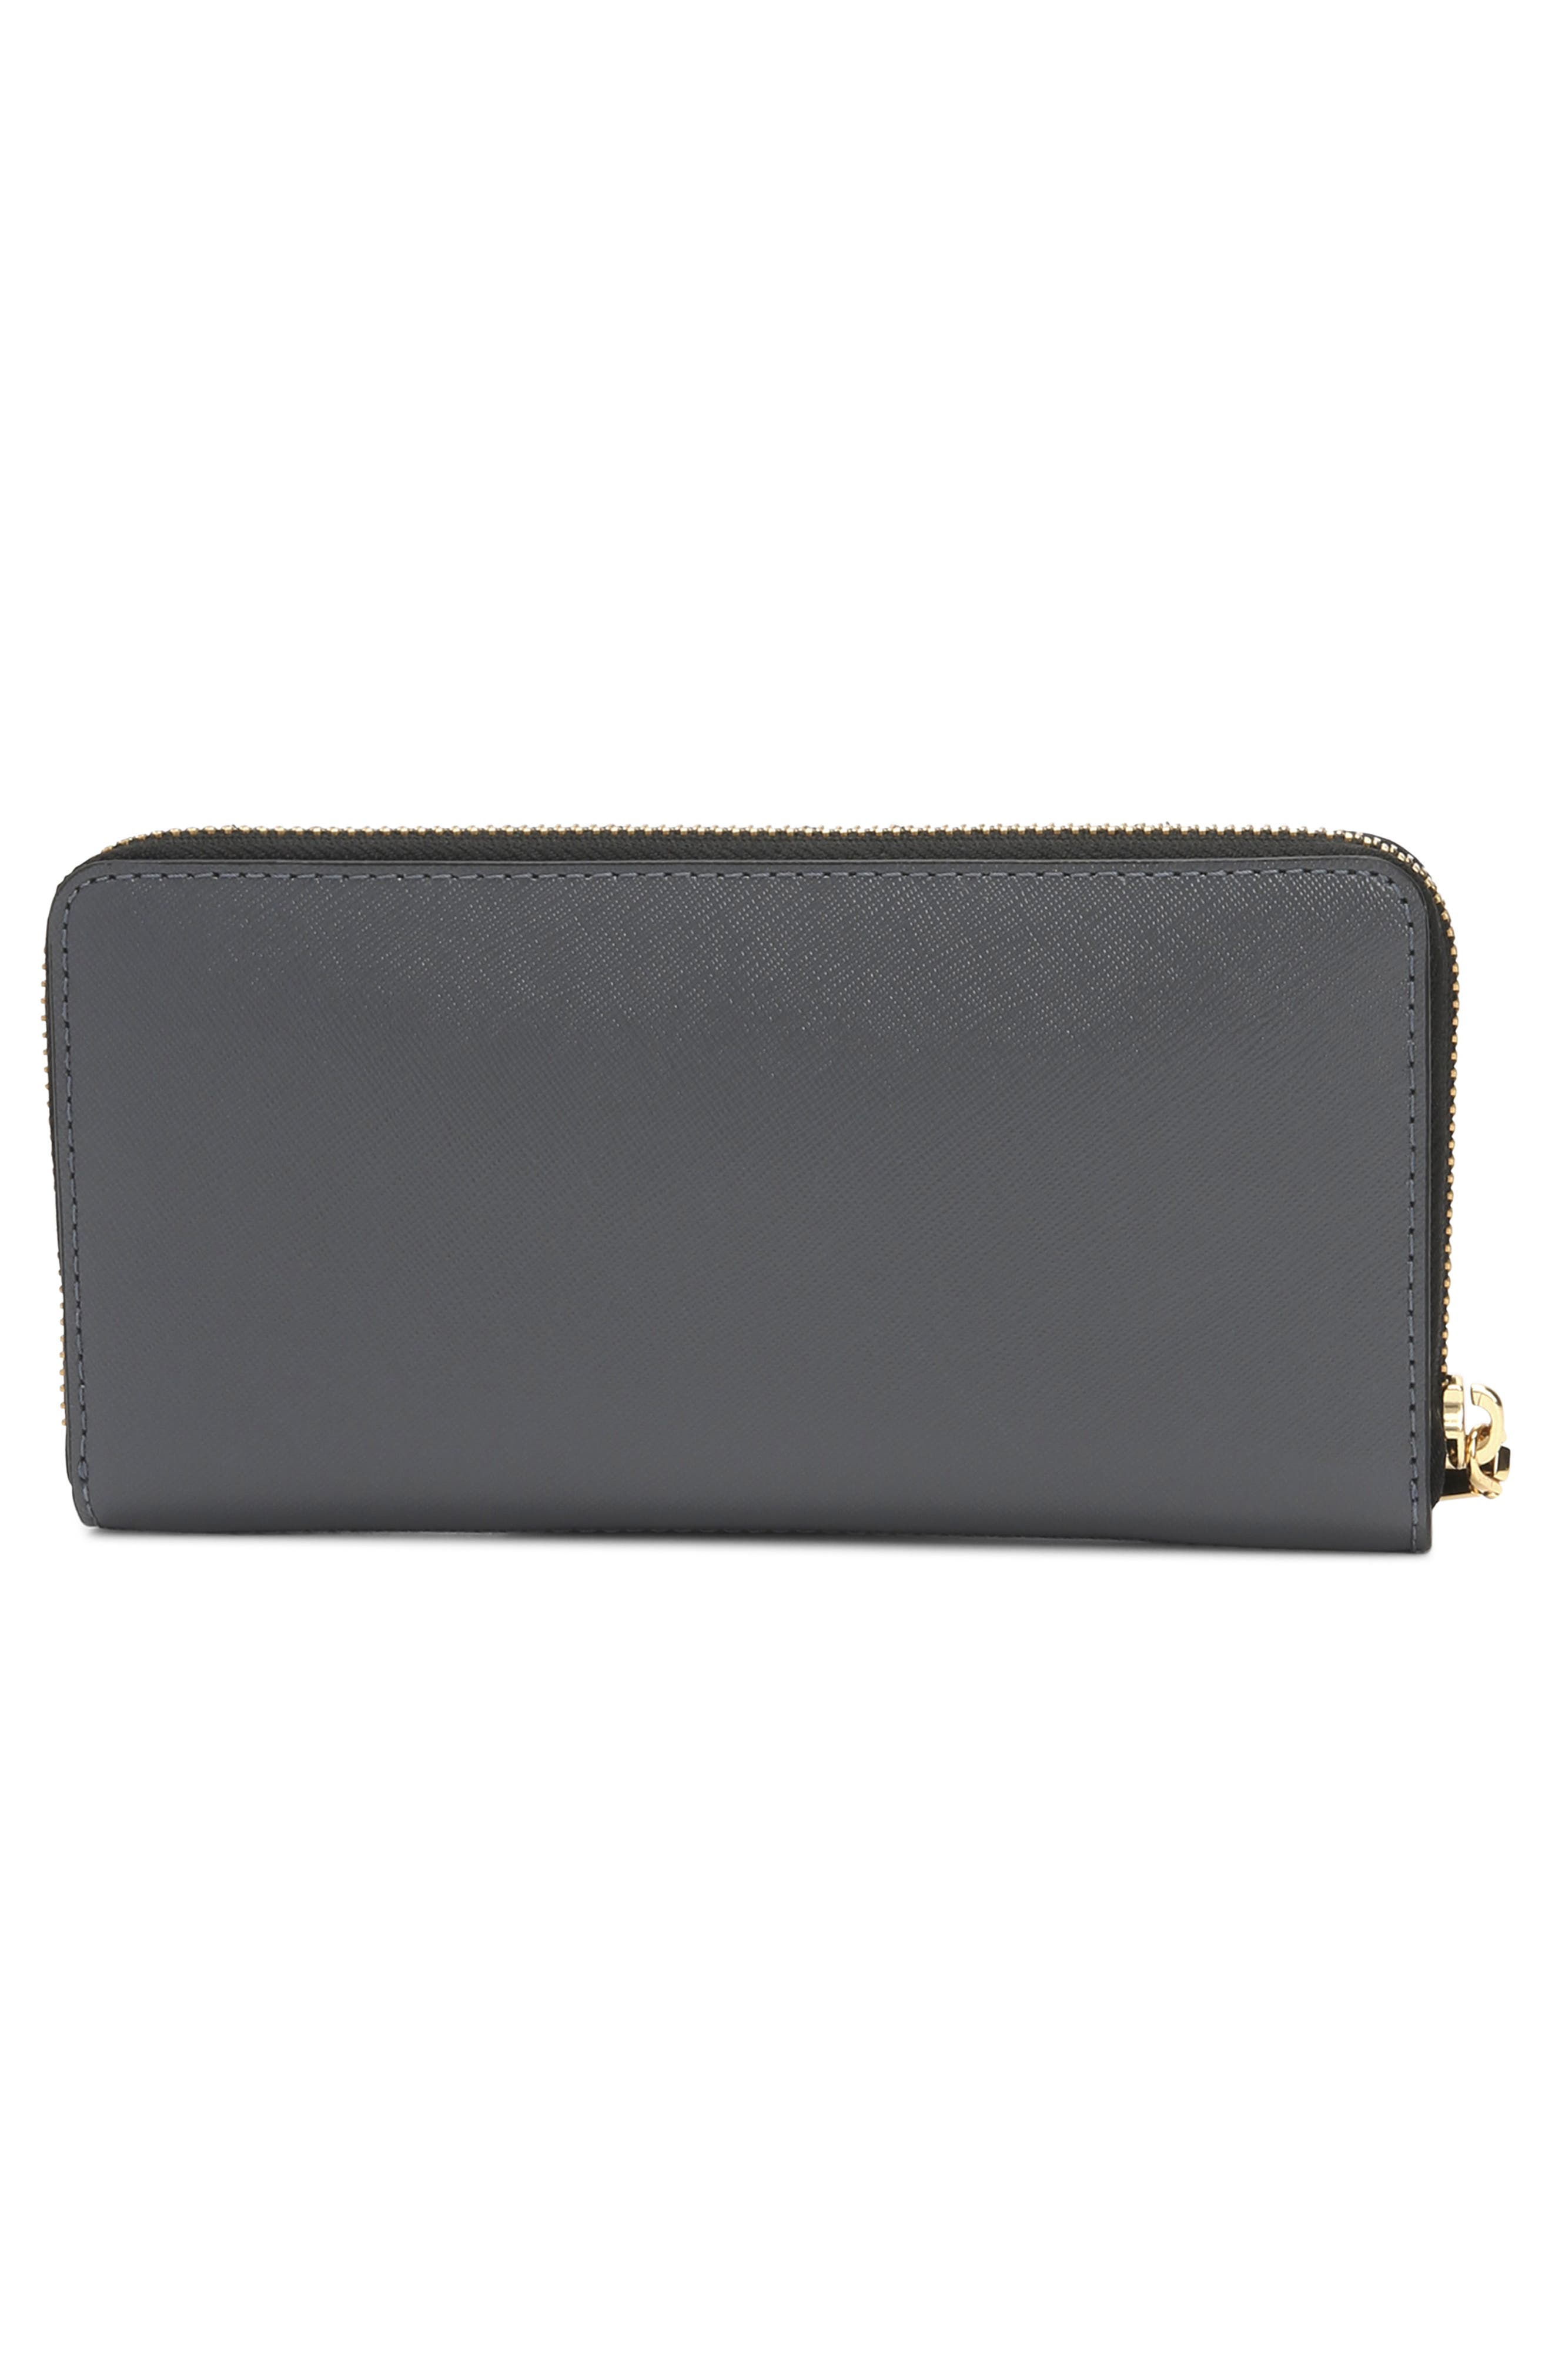 Snapshot Leather Continental Wallet,                             Alternate thumbnail 3, color,                             BLACK MULTI